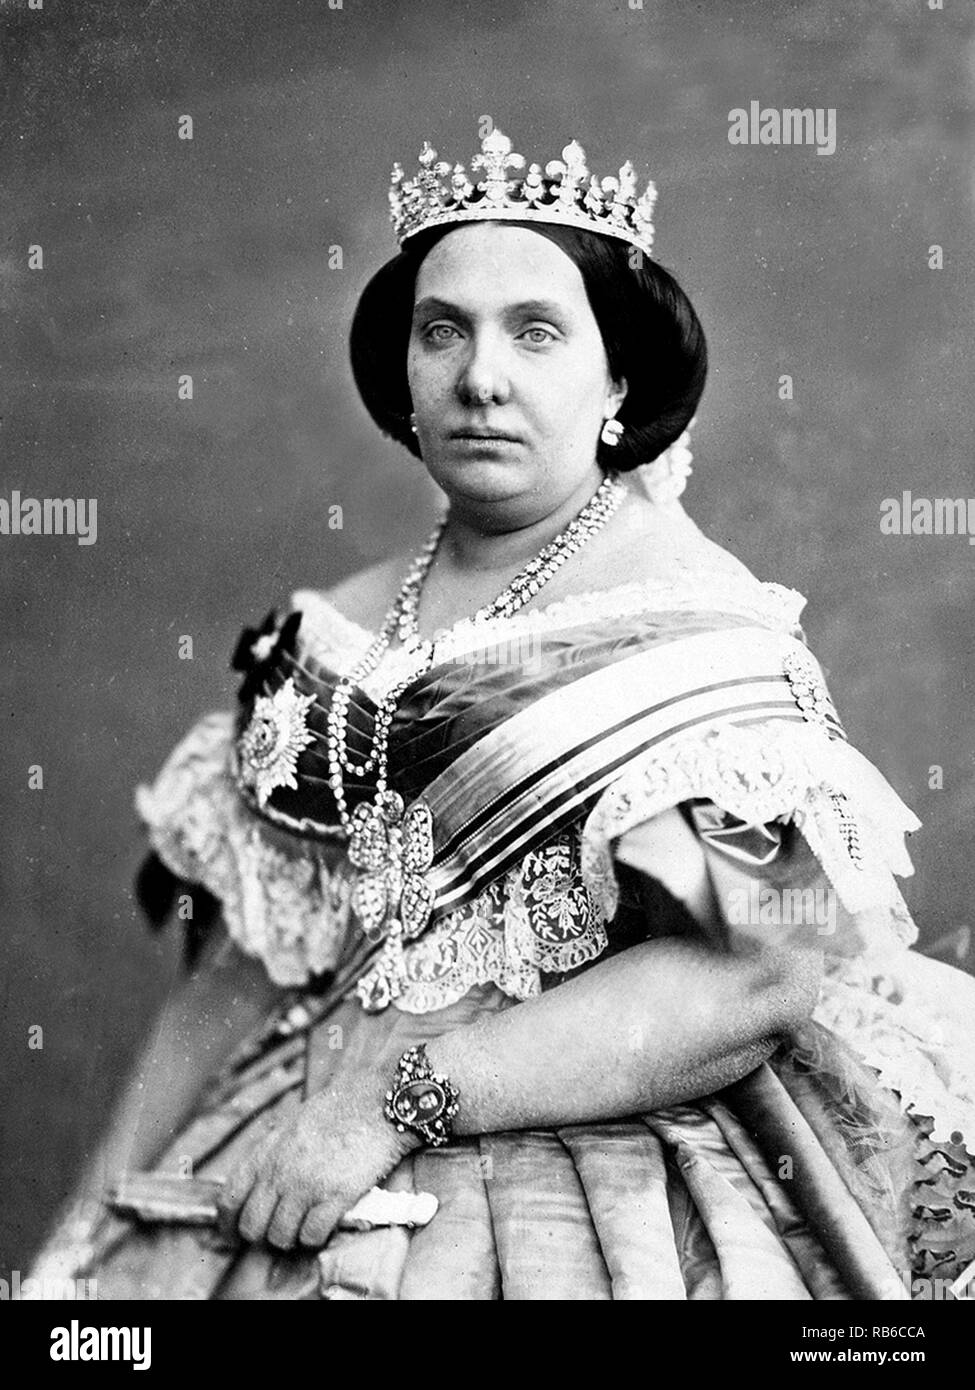 Isabella II (1830 – 1904) Queen of Spain from 1833 until 1868. - Stock Image